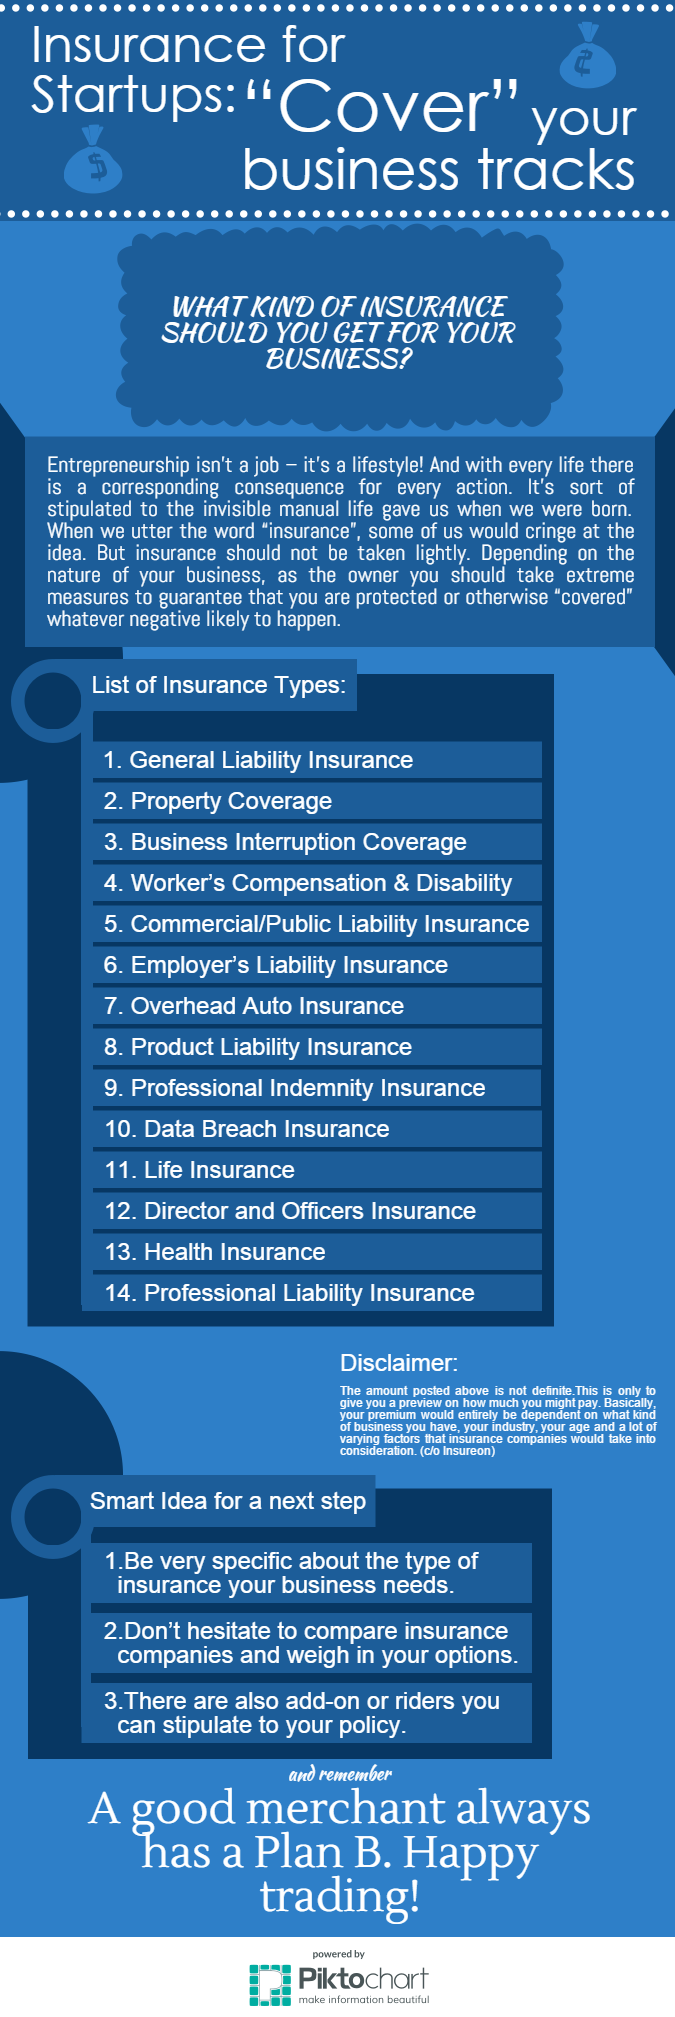 Insurance for Startups Infographic